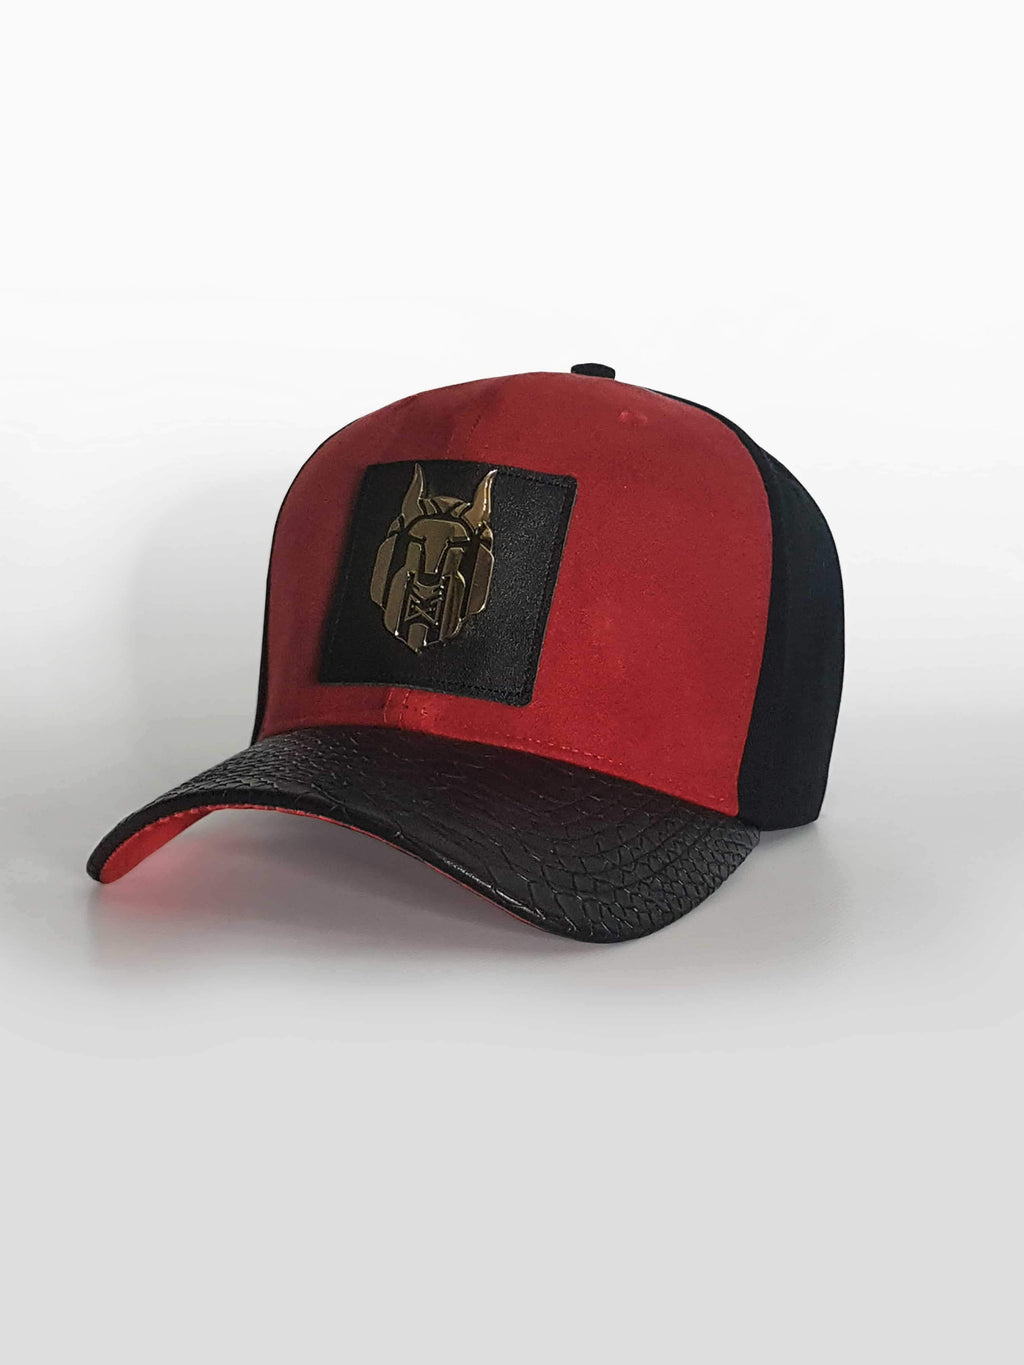 MEN WOLVEZ NOT SHEEP RED SUEDE HAT